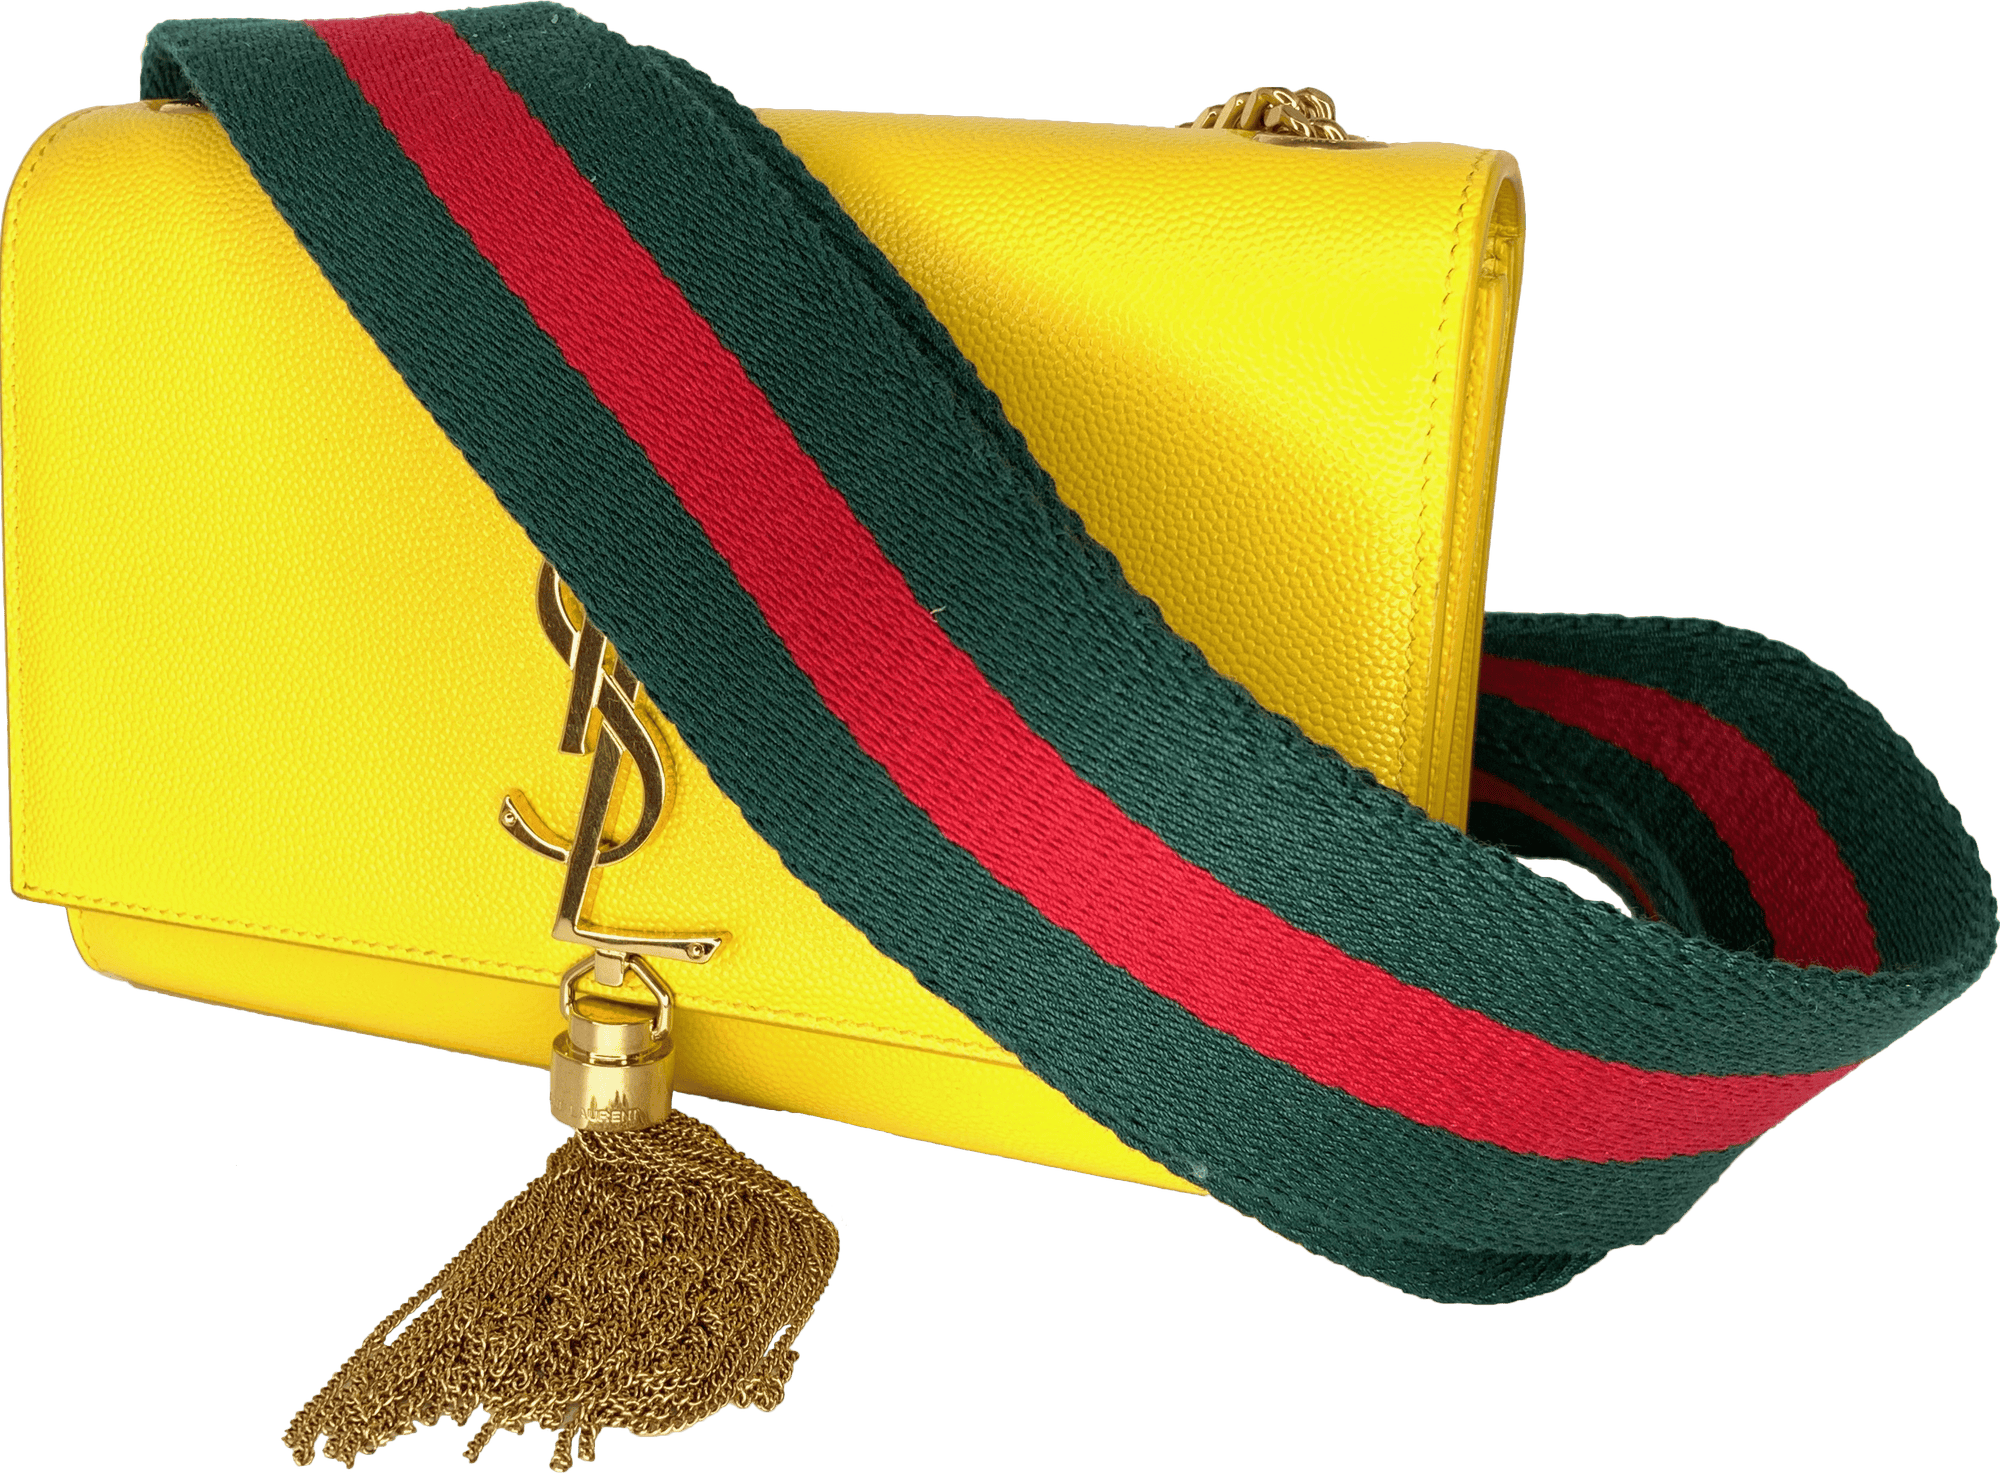 Gucci Style Red Green Handbag Strap - Gold Hardware - Art Tributes